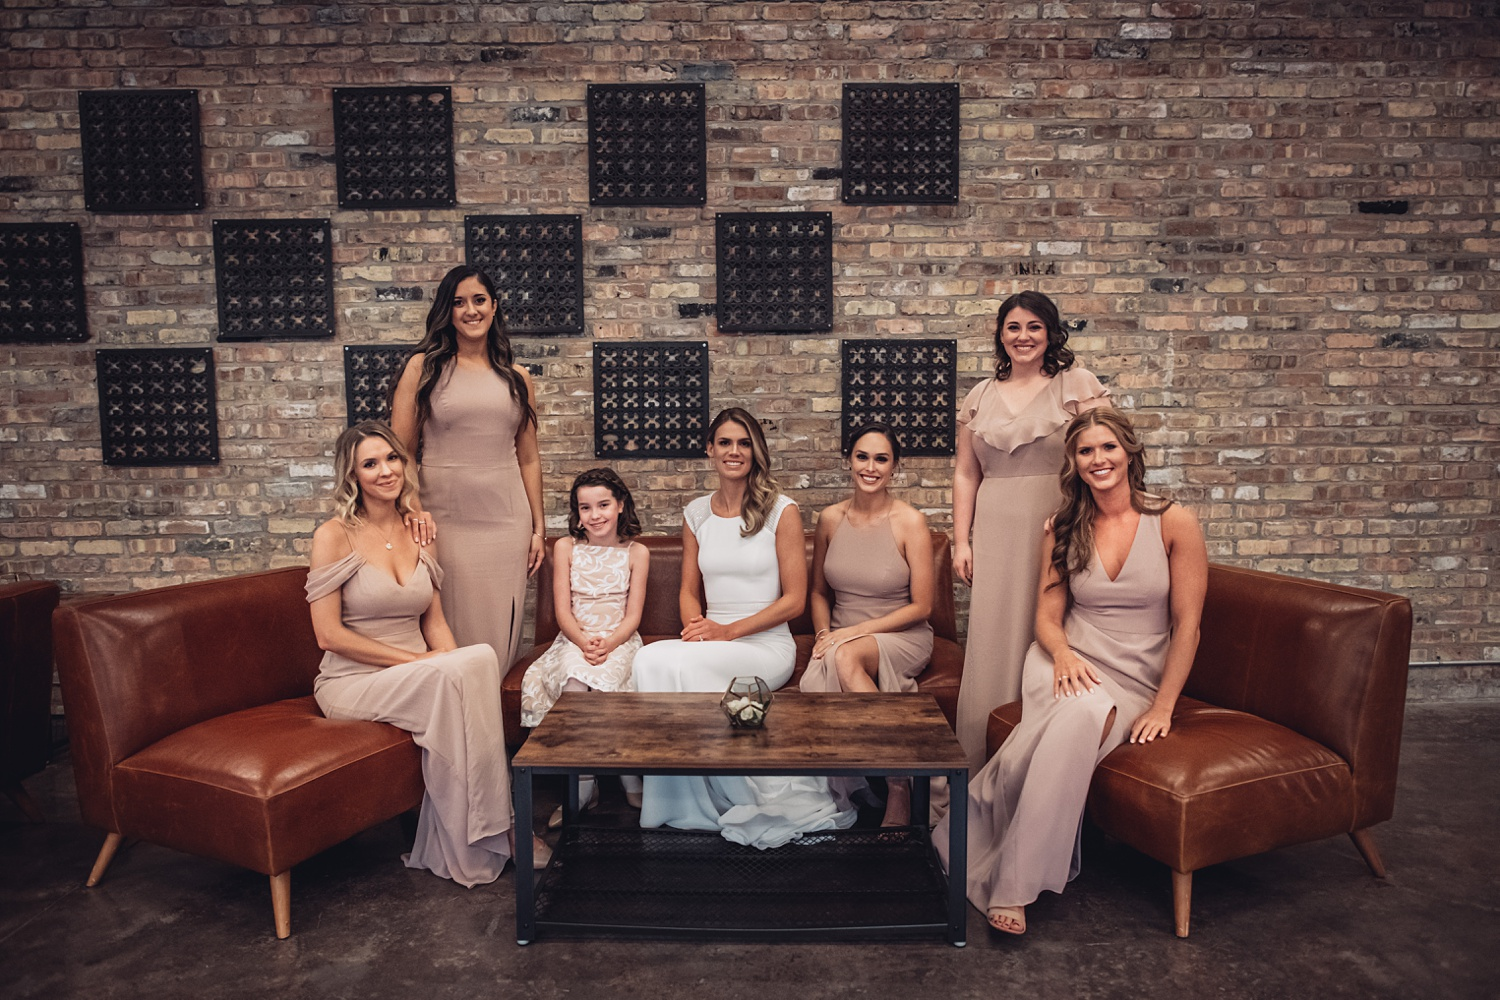 Artifact Events Fall Chicago Wedding - The Adamkovi bridesmaids